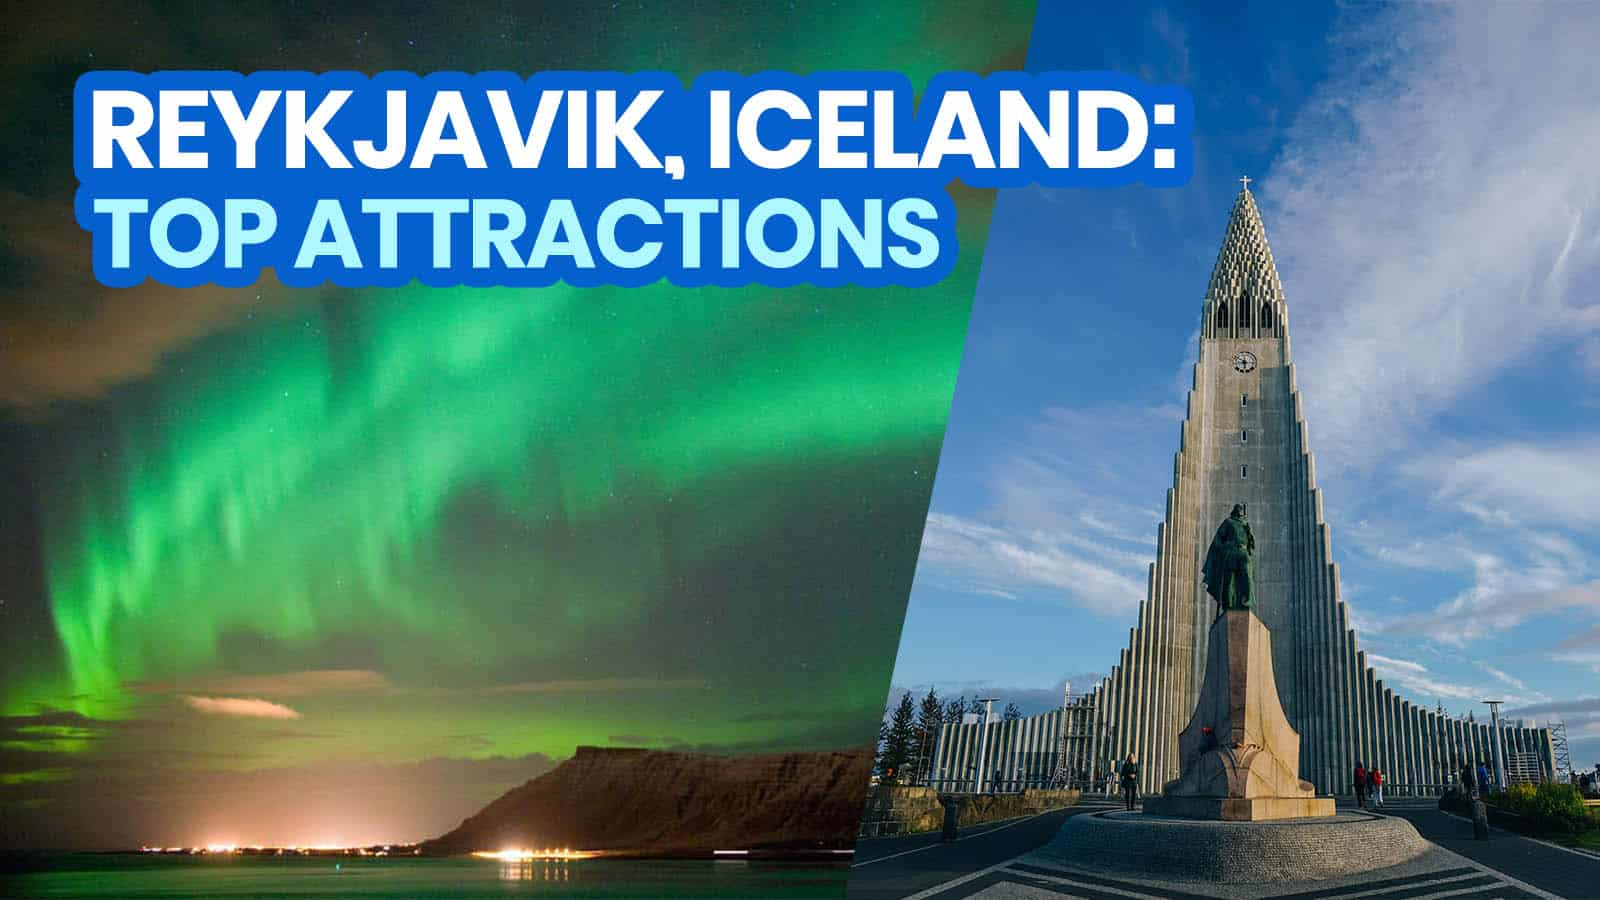 REYKJAVIK: 25 Best Things to Do & Tourist Attractions to Visit